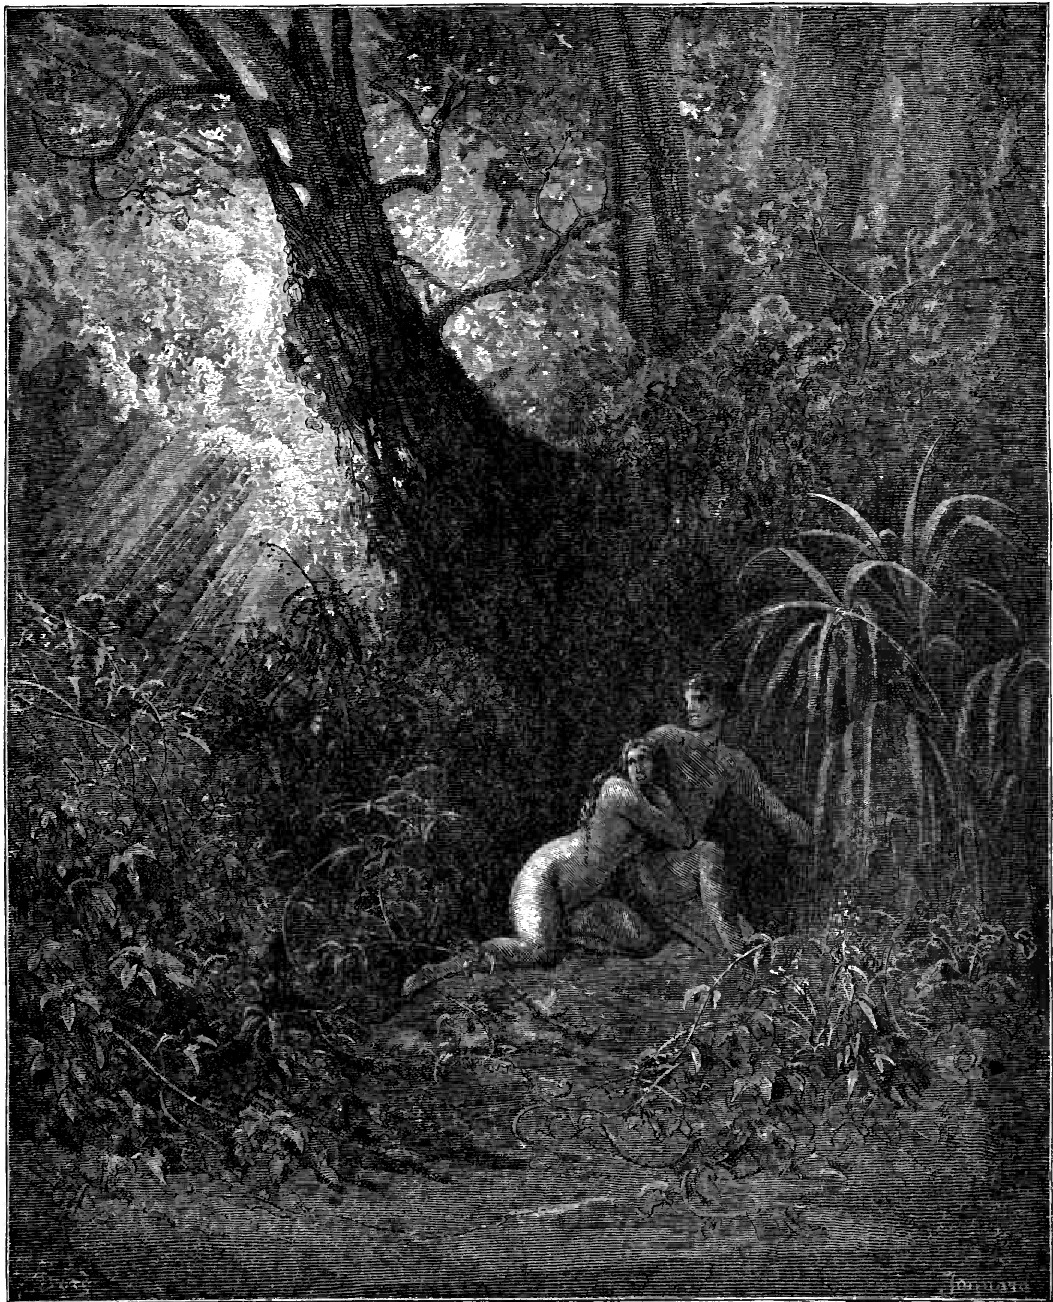 heroic in paradise lost by john lost Paradise lost by john milton (1608-1674), is the most important epic poem in english literature it tells the story of hell, the temptation of adam and eve by satan, the fall and the expulsion from the garden of heaven.